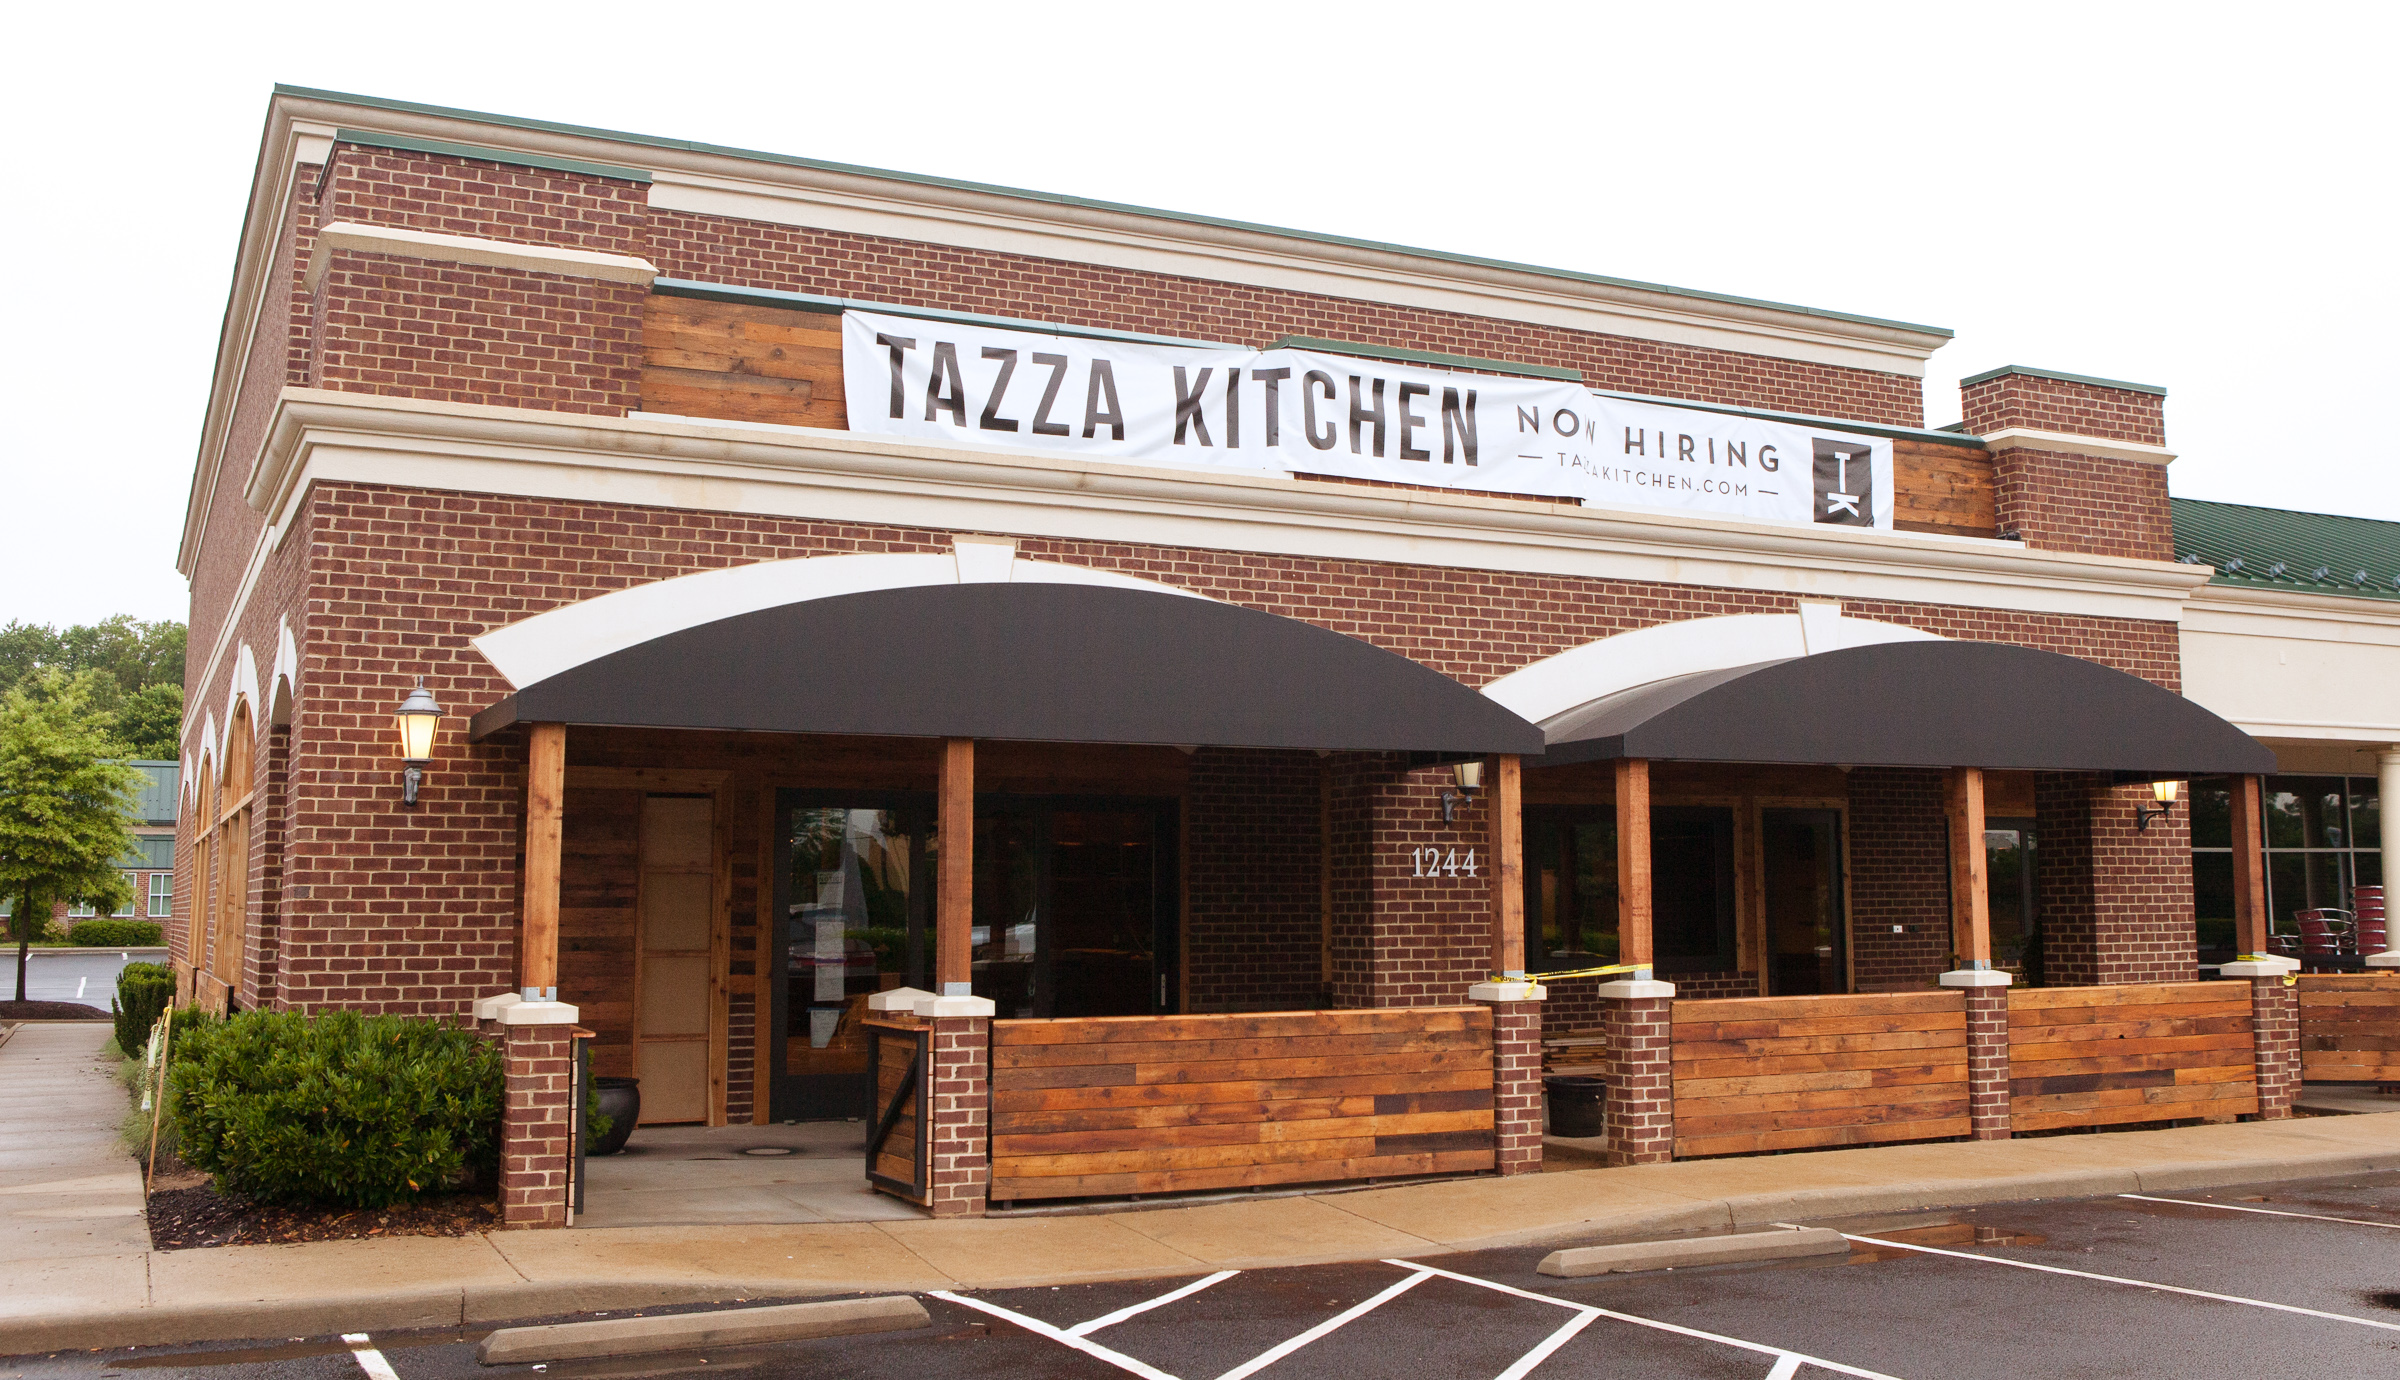 An opening date for Tazza Kitchen in Midlothian – Tazza Kitchen